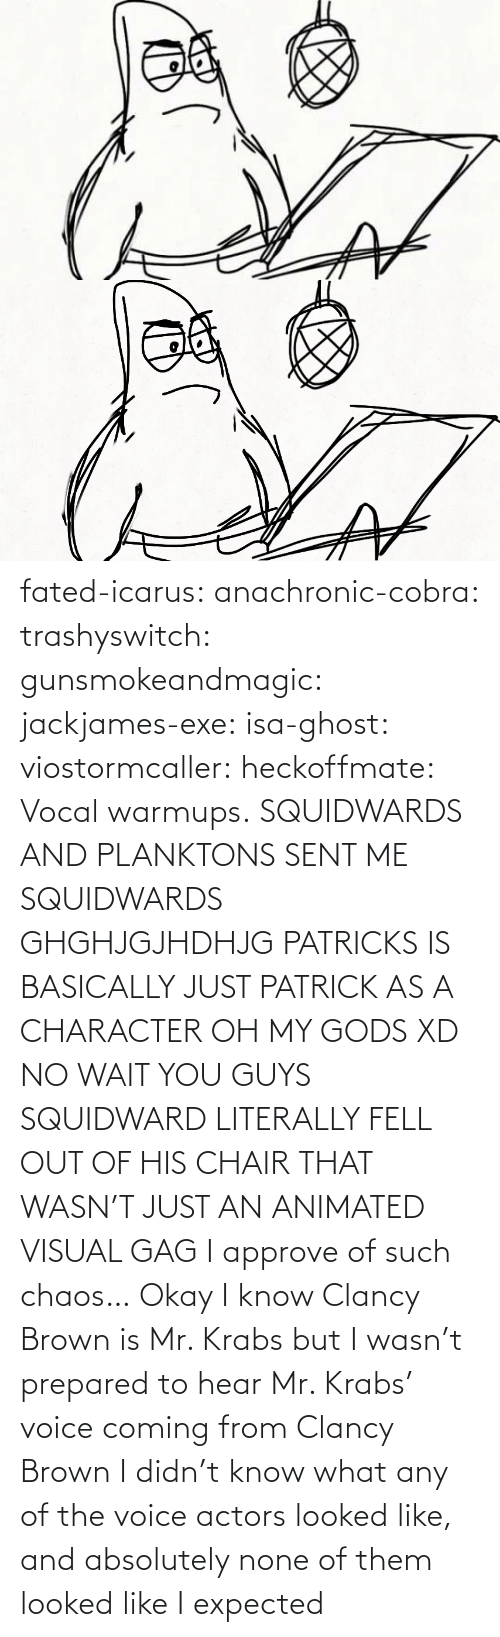 Mr: fated-icarus:  anachronic-cobra: trashyswitch:  gunsmokeandmagic:  jackjames-exe:  isa-ghost:   viostormcaller:  heckoffmate: Vocal warmups. SQUIDWARDS AND PLANKTONS SENT ME  SQUIDWARDS GHGHJGJHDHJG   PATRICKS IS BASICALLY JUST PATRICK AS A CHARACTER OH MY GODS XD   NO WAIT YOU GUYS SQUIDWARD LITERALLY FELL OUT OF HIS CHAIR THAT WASN'T JUST AN ANIMATED VISUAL GAG    I approve of such chaos…    Okay I know Clancy Brown is Mr. Krabs but I wasn't prepared to hear Mr. Krabs' voice coming from Clancy Brown    I didn't know what any of the voice actors looked like, and absolutely none of them looked like I expected